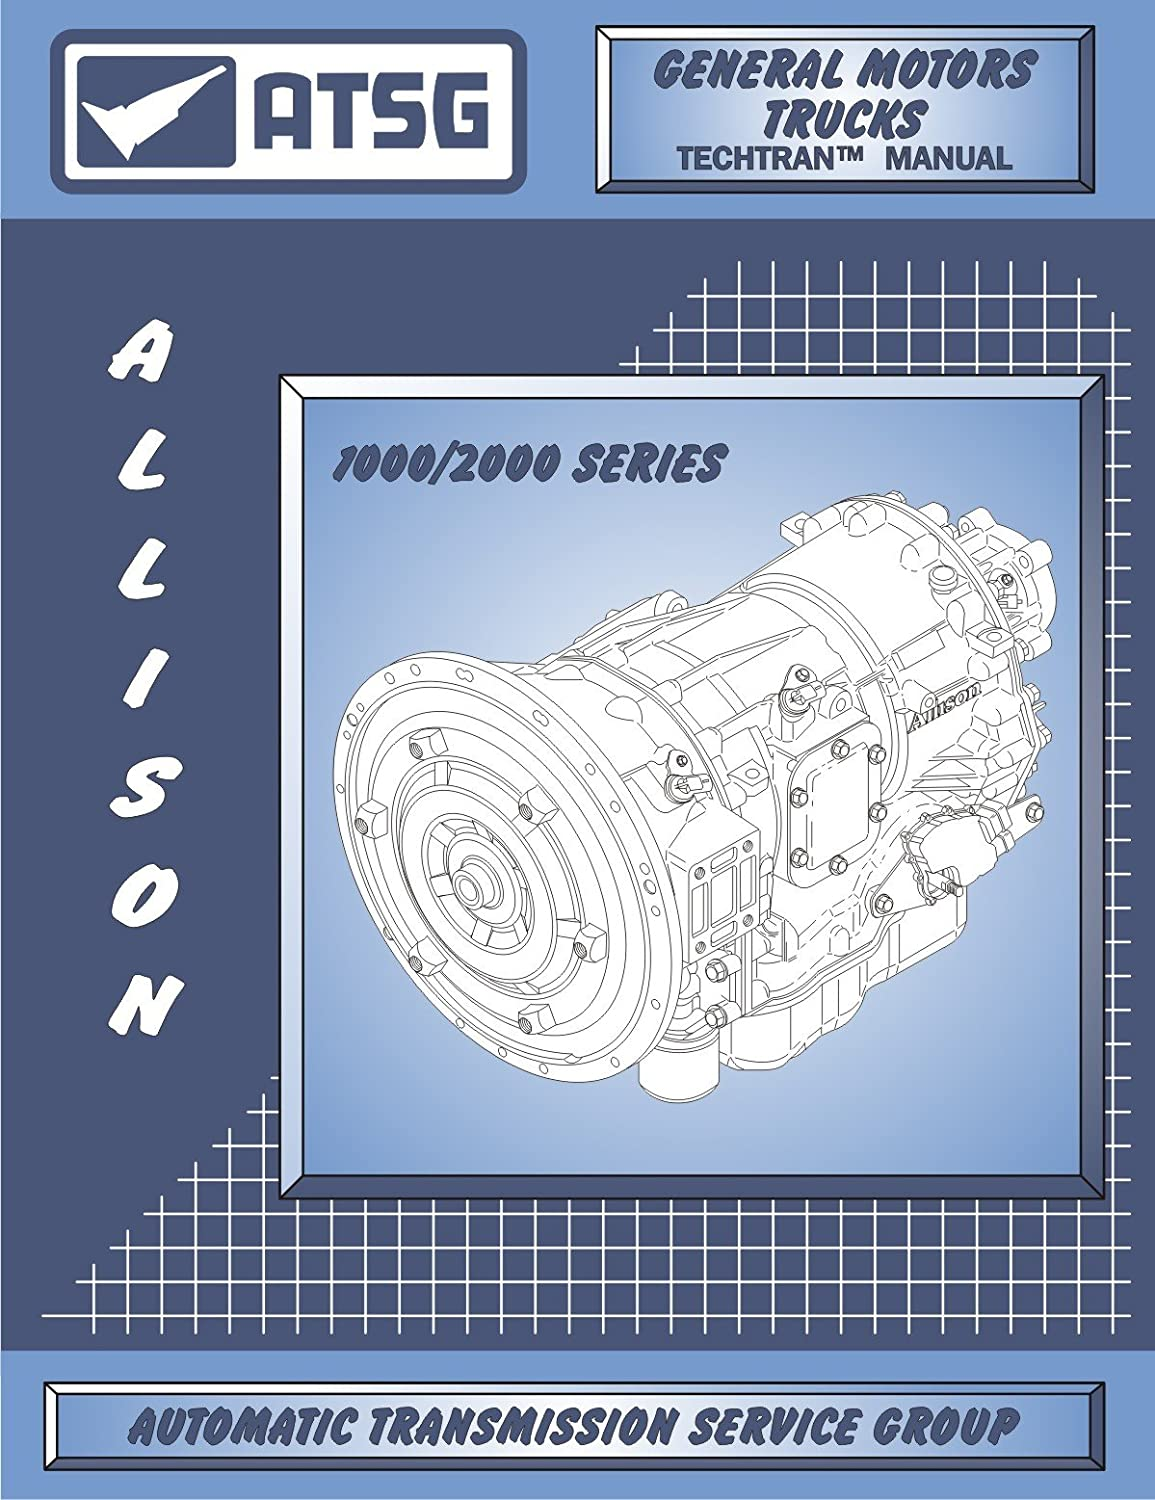 814Vy0qw1%2BL._SL1500_ amazon com atsg allison 1000 2000 transmission repair manual allison 2000 series wiring diagram at nearapp.co